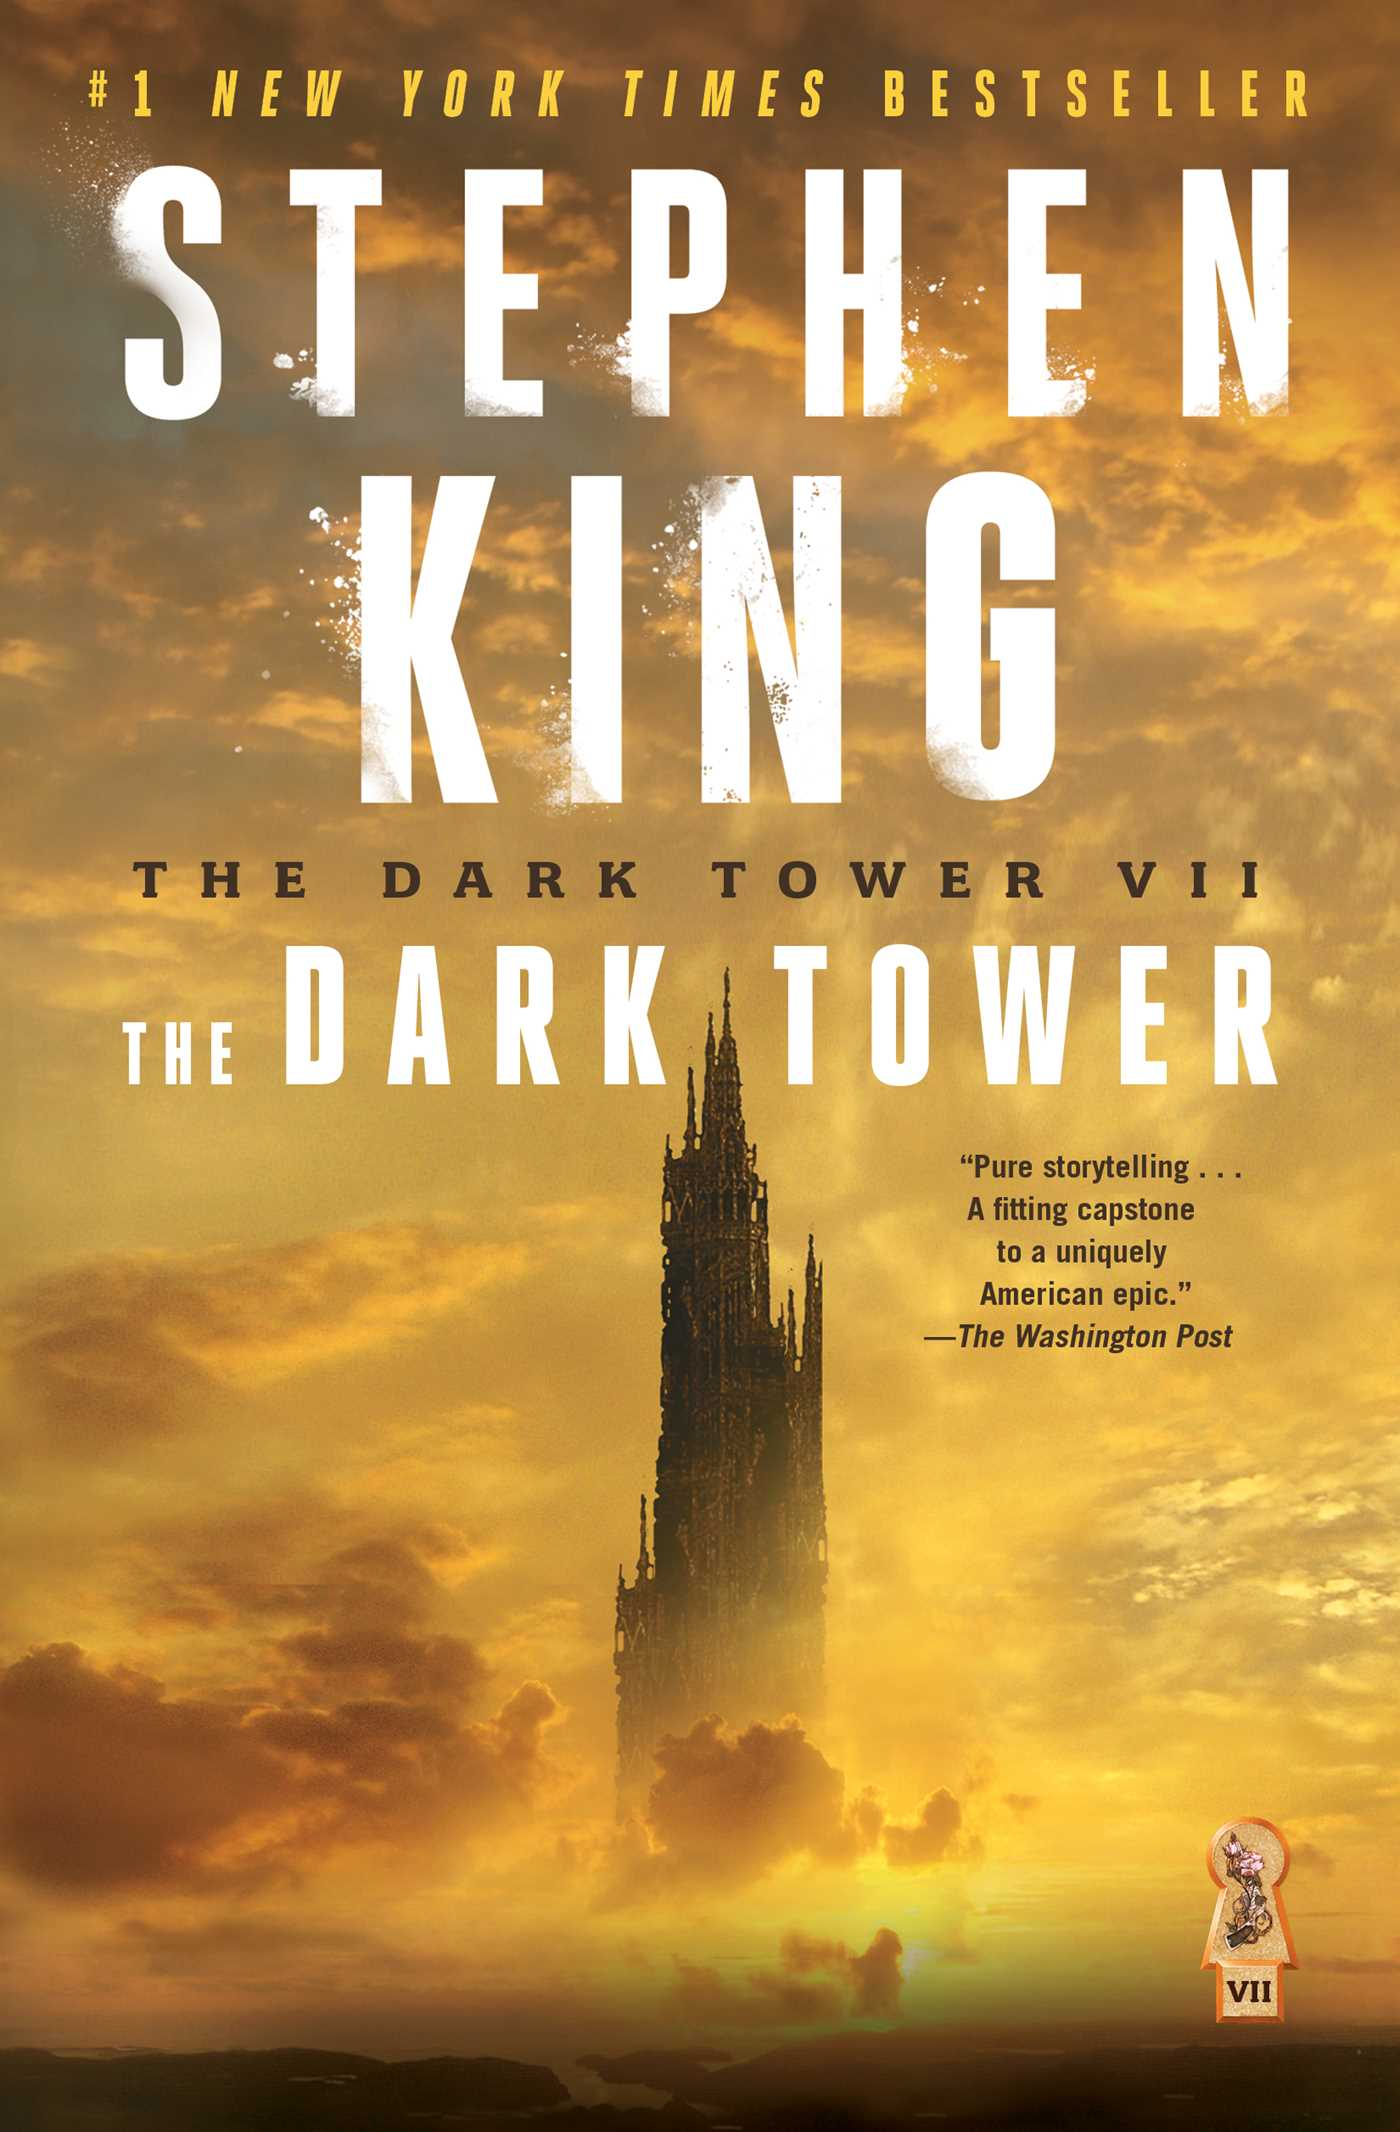 The dark tower vii 9780743254564 hr